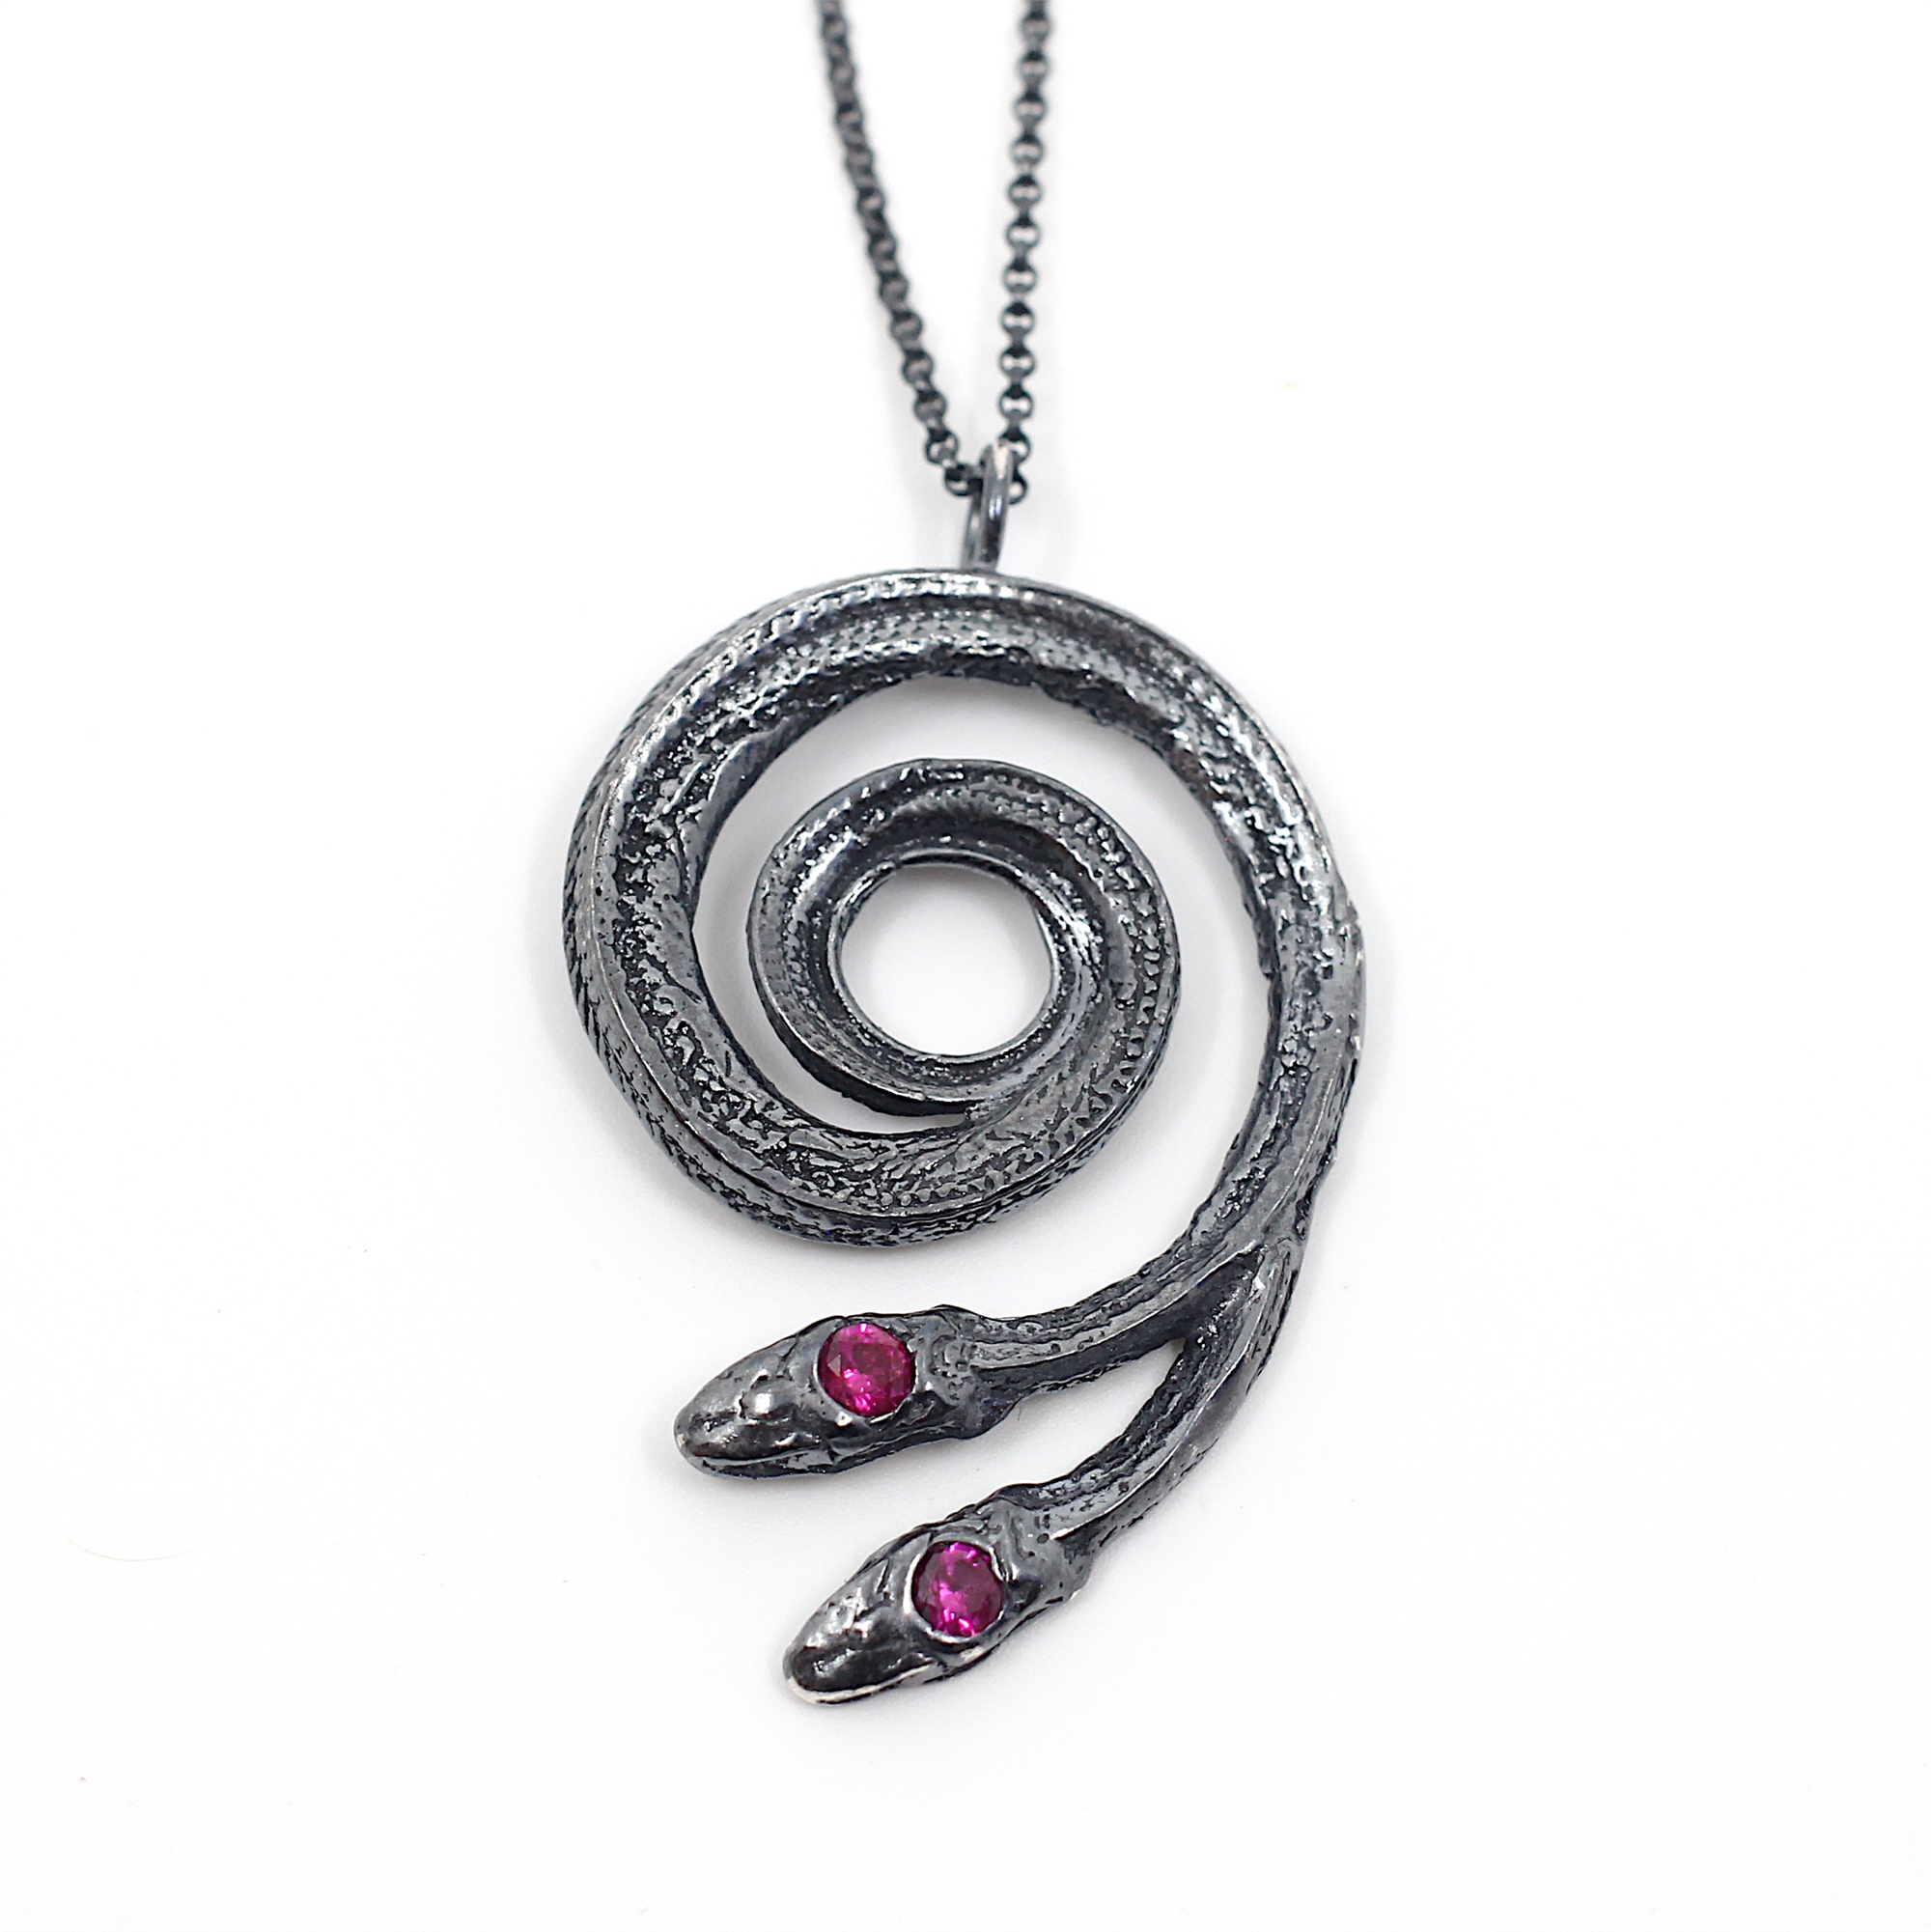 Two-headed Ruby Serpentine Necklace by Anna Johnson